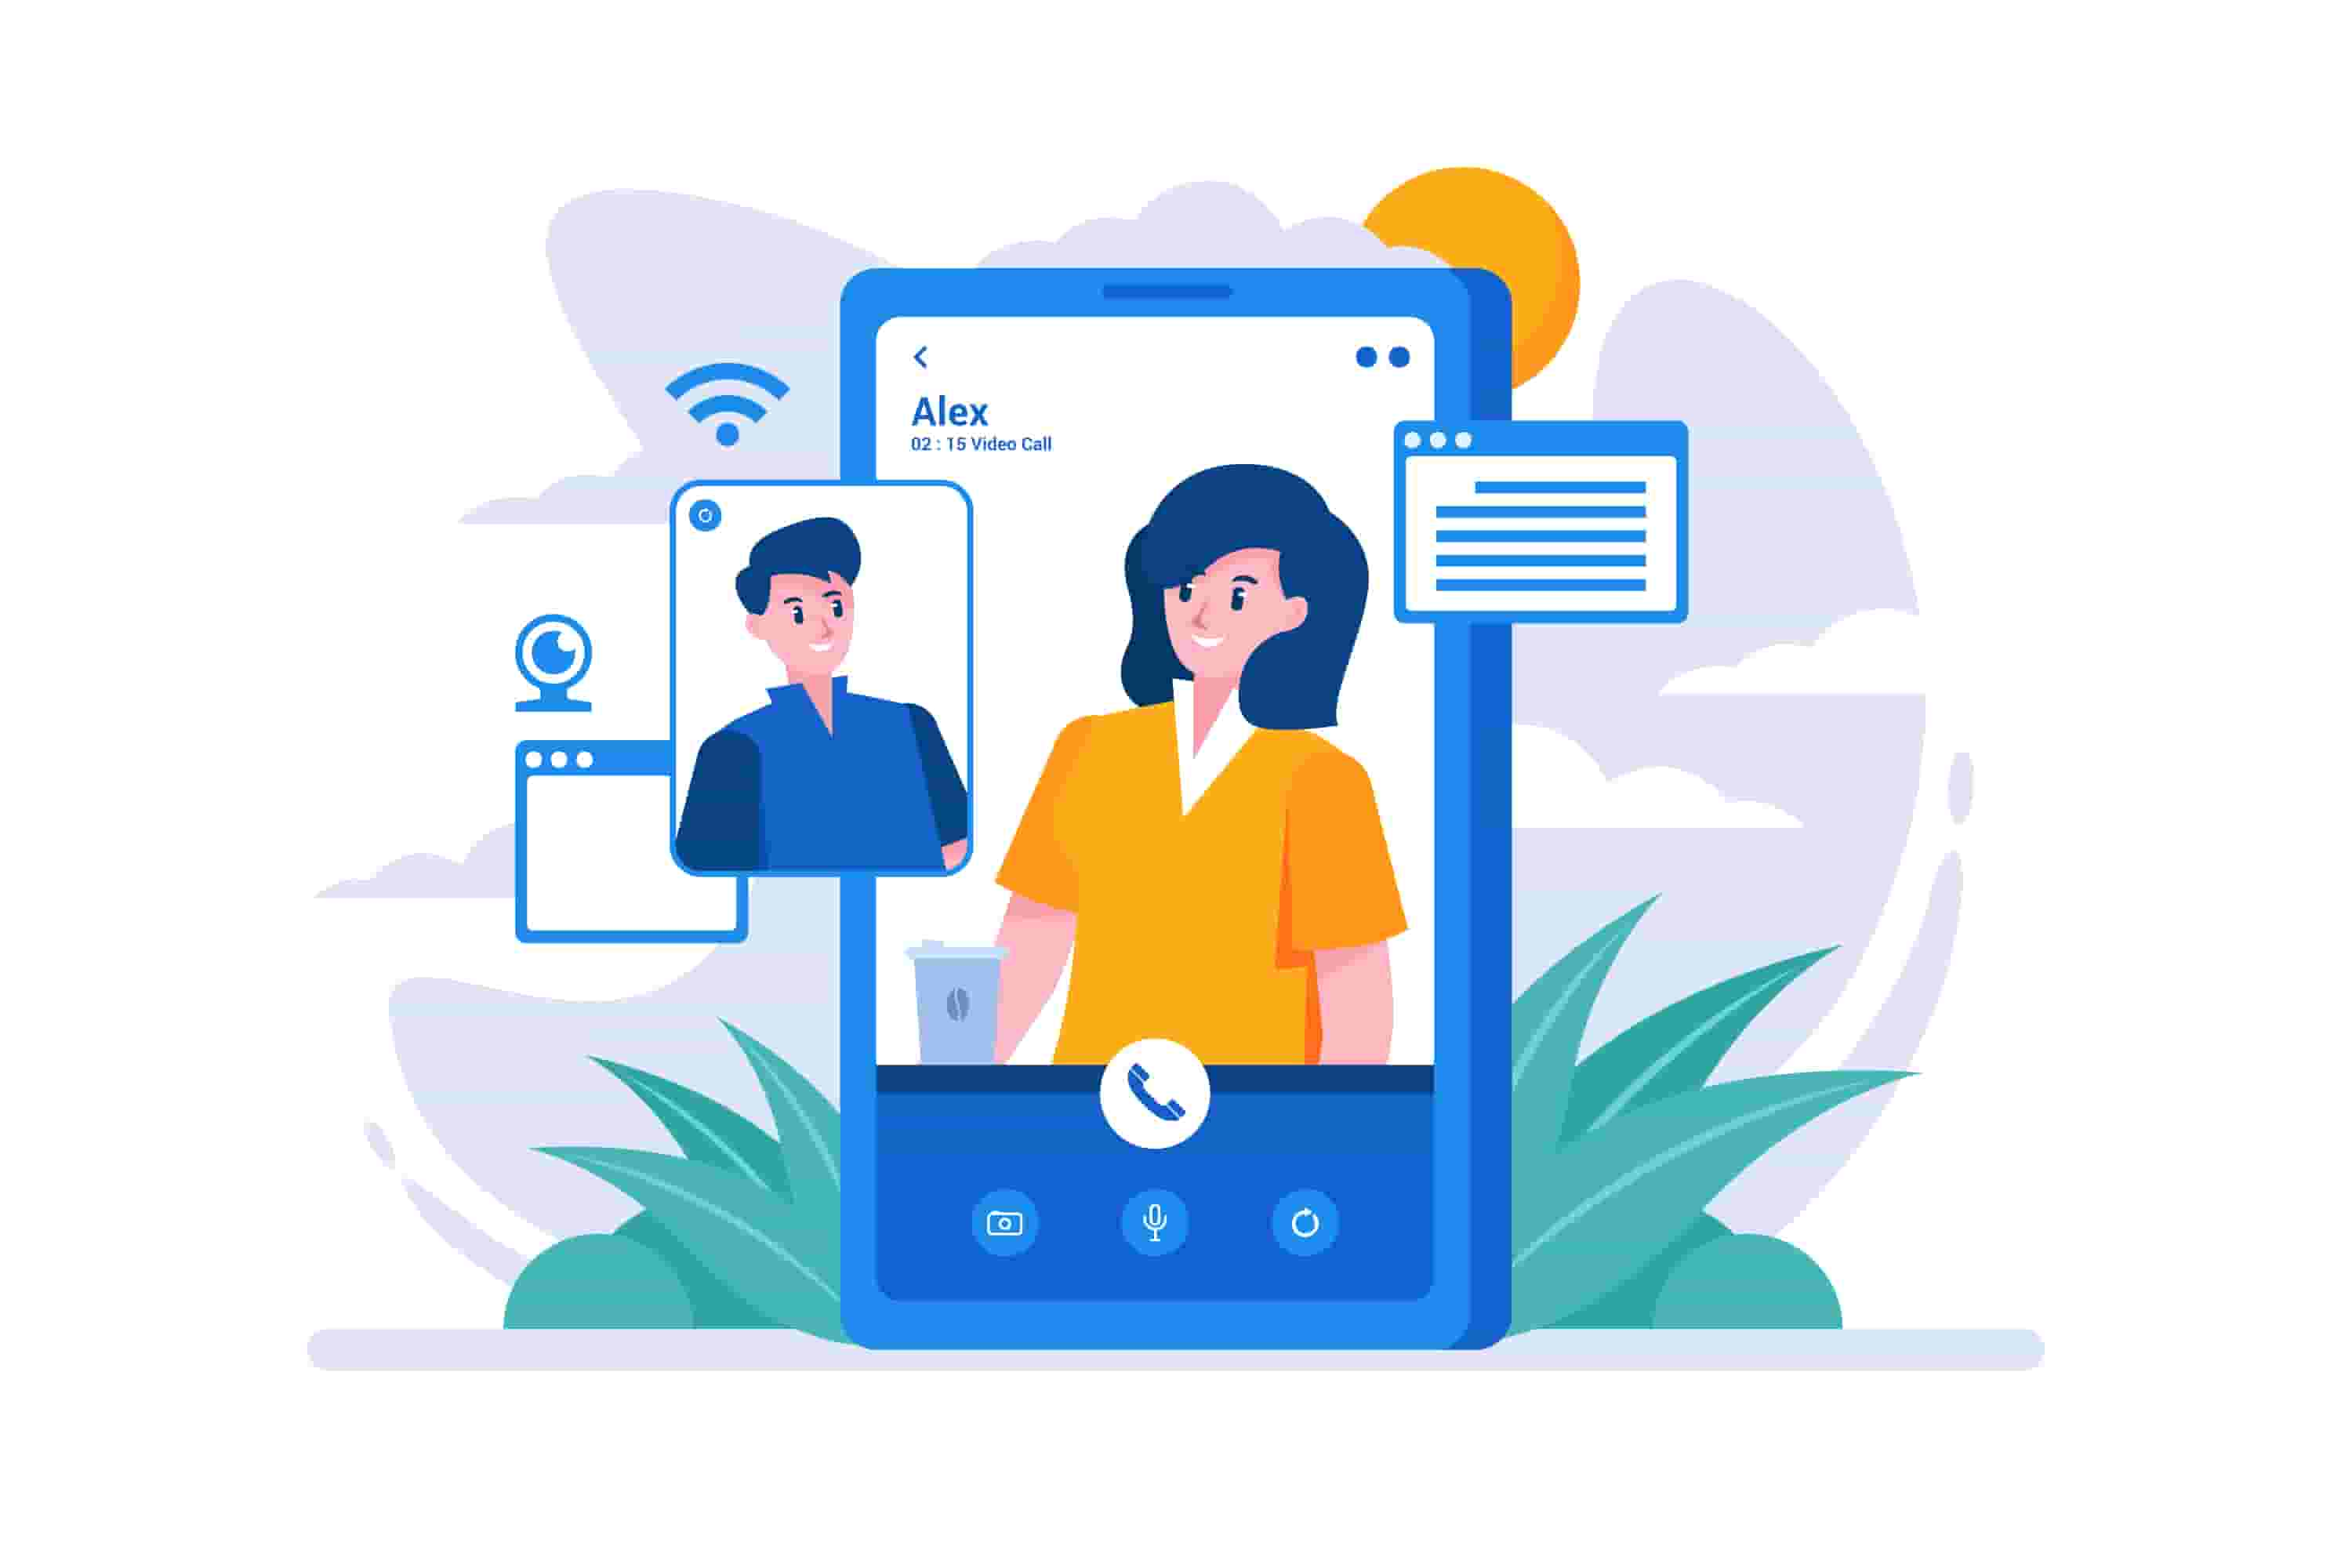 Use tools to enhance remote work collaboration